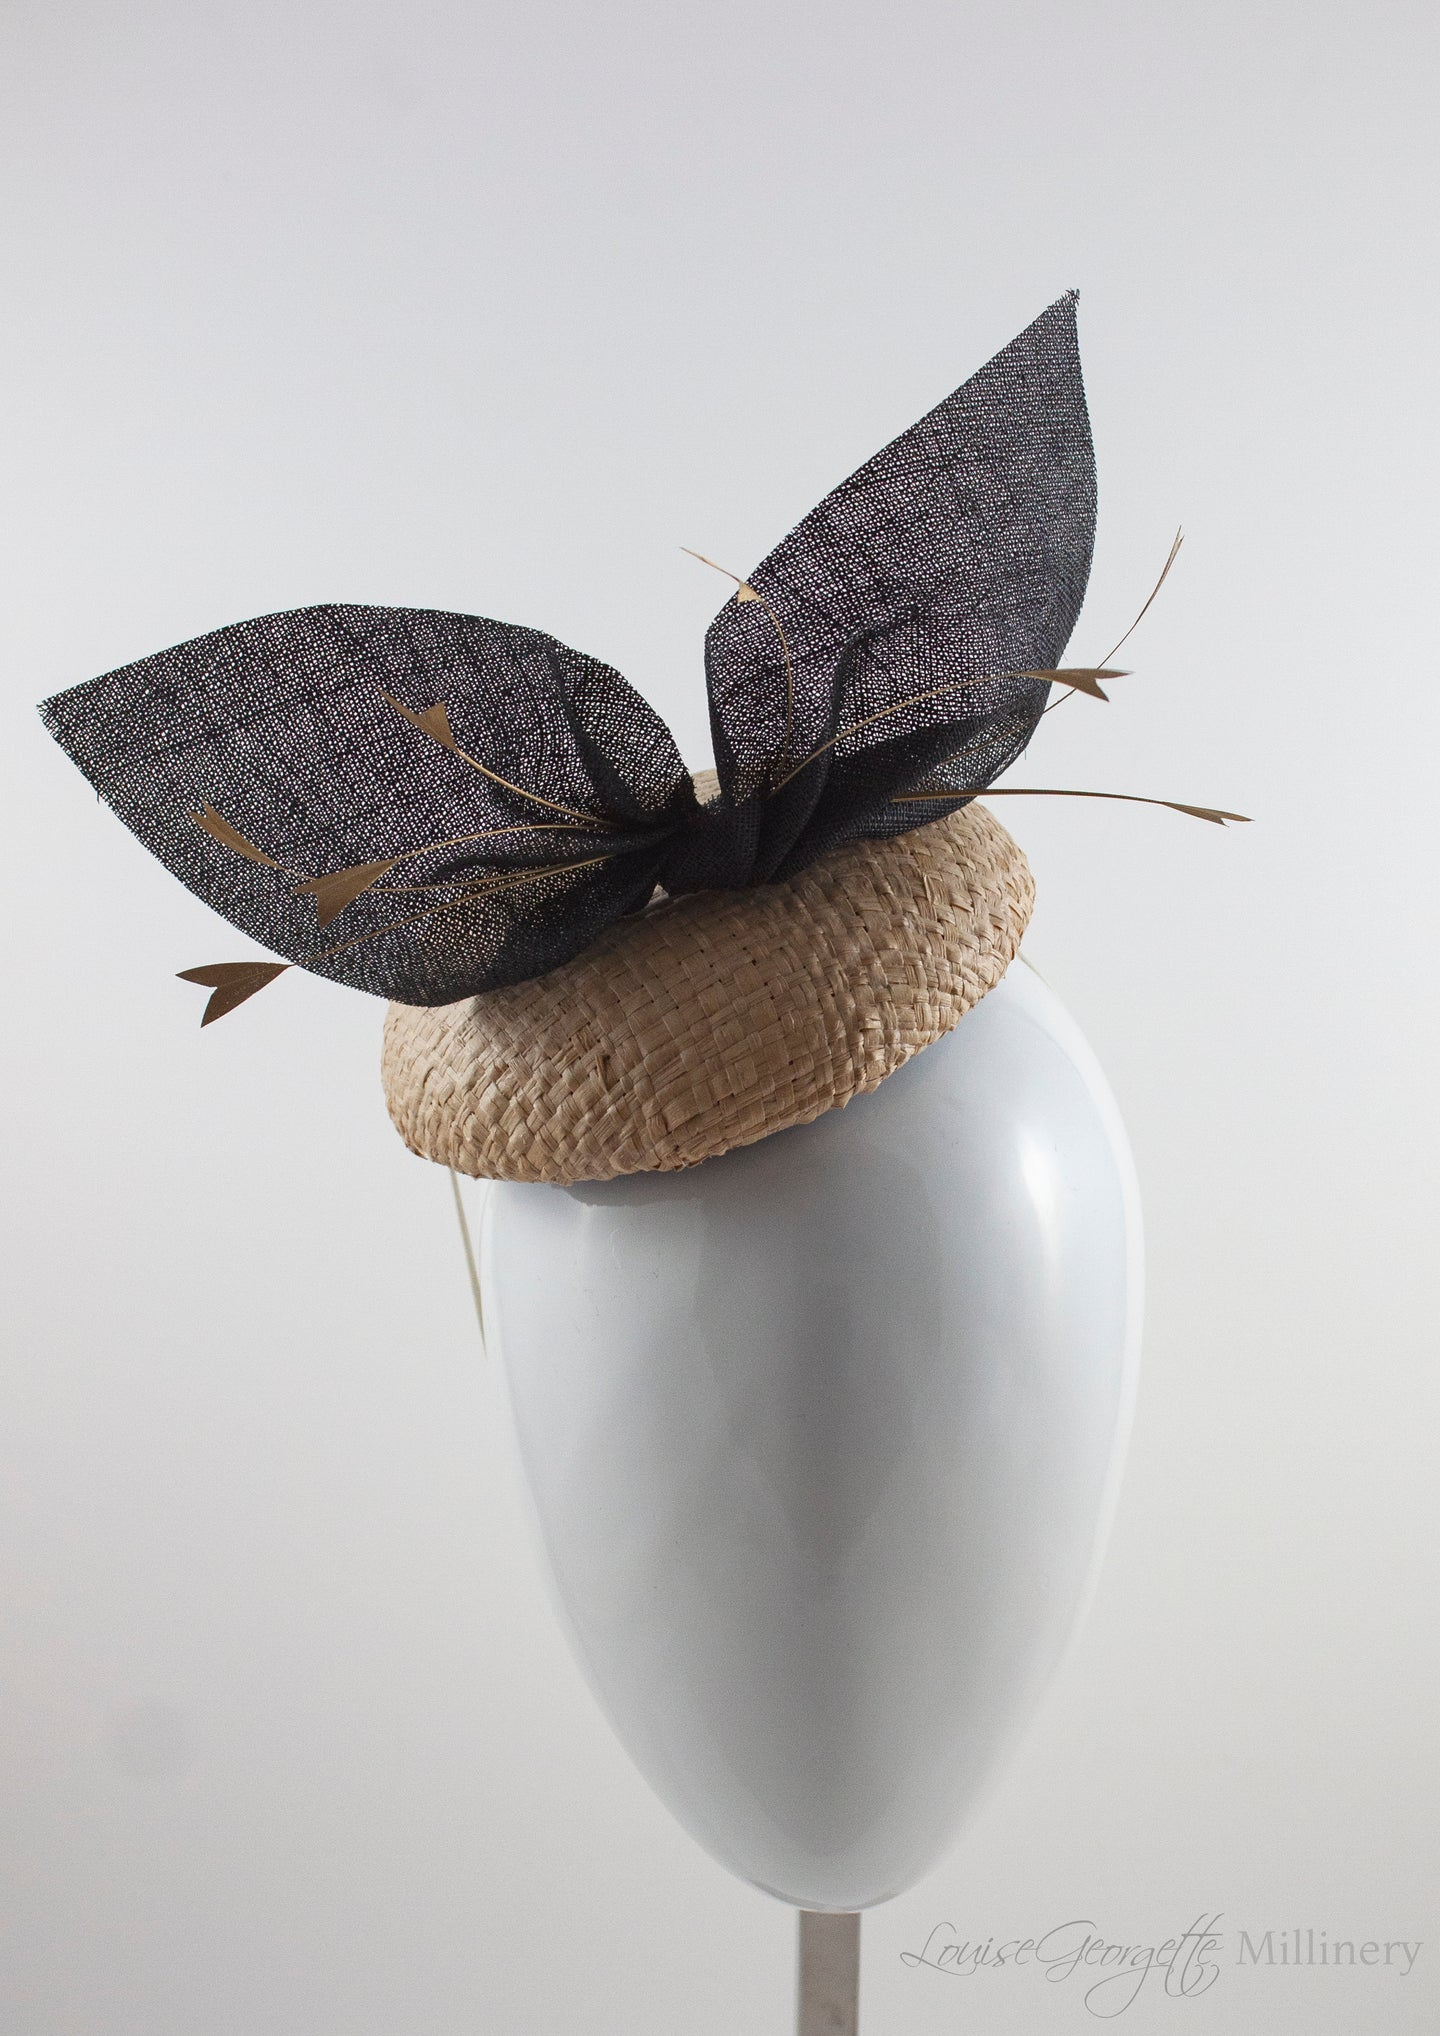 Cream straw hat with gold feathers and black bow. Suitable for weddings, special occasions and race days. A popular straw style, our signature fun and timeless hat suits most face shapes and can be made in bespoke colours upon request.